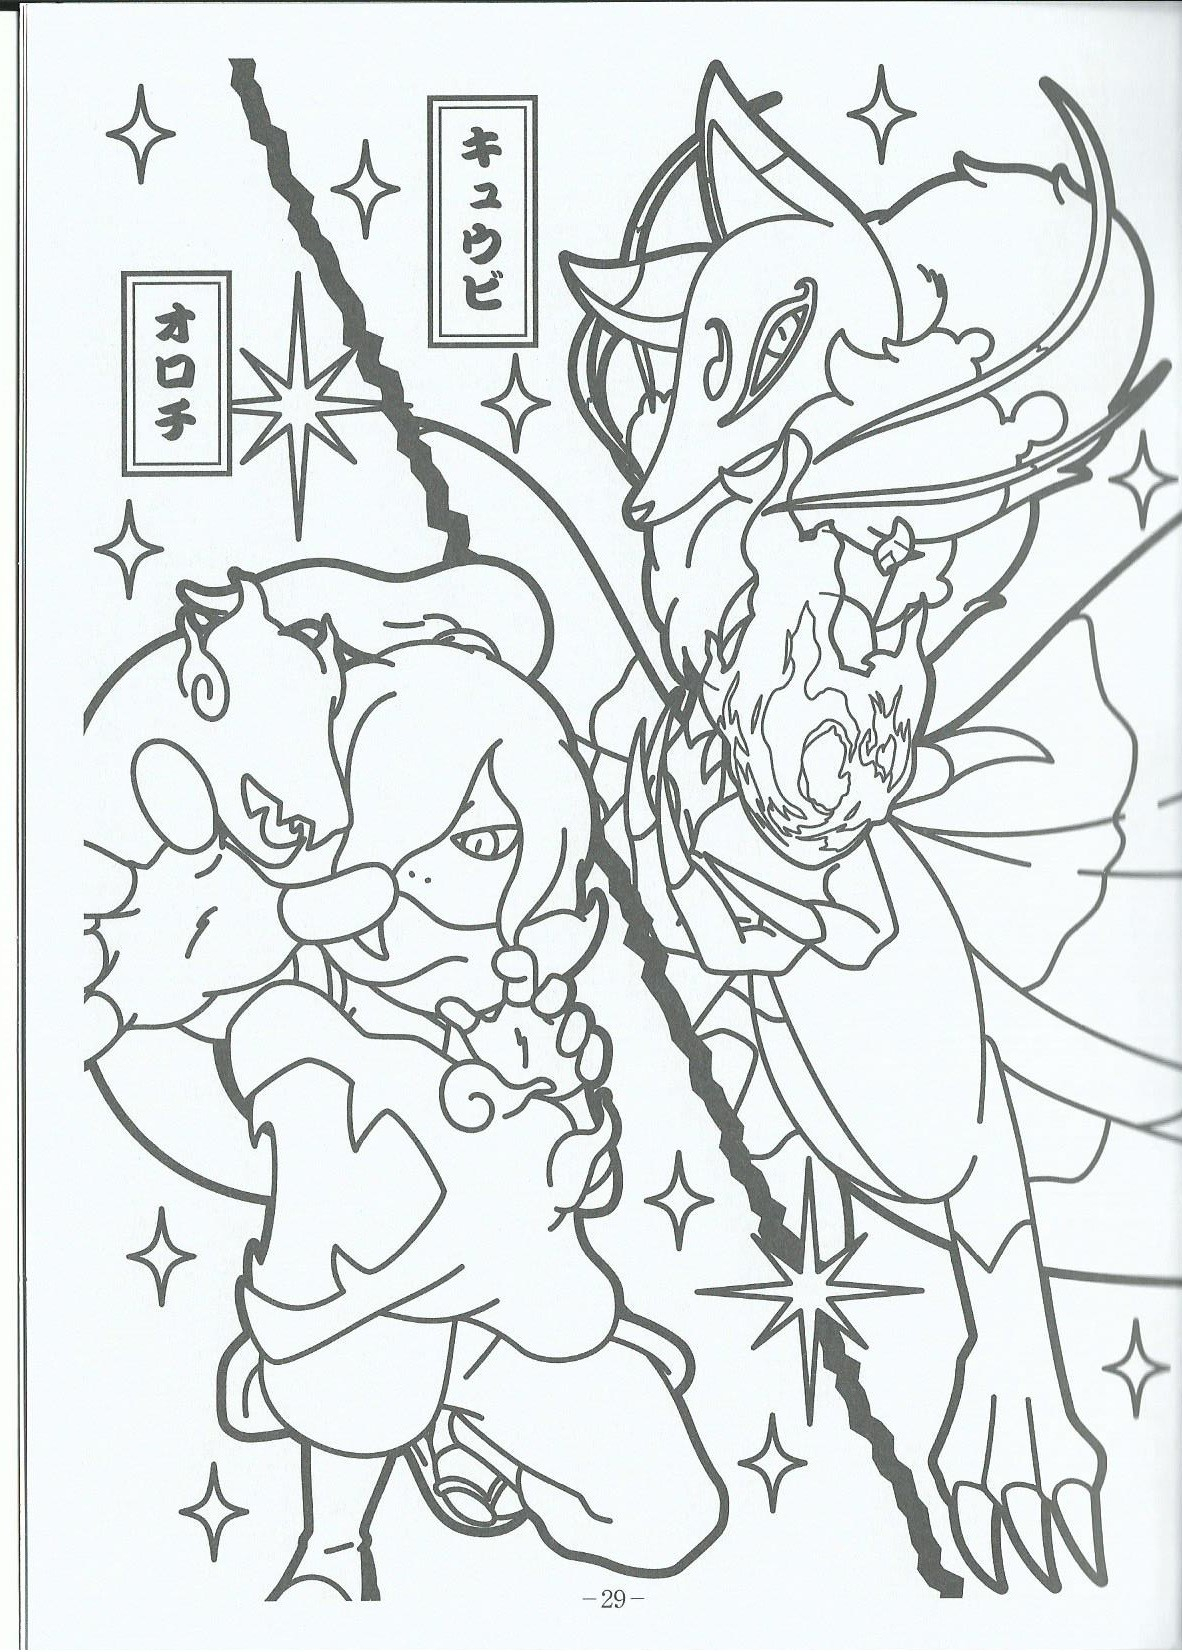 Fresh Yo Kai Watch Coloring Pages – Advance Thun Collection Of Yo Kai Watch Coloring Pages to Print to Print